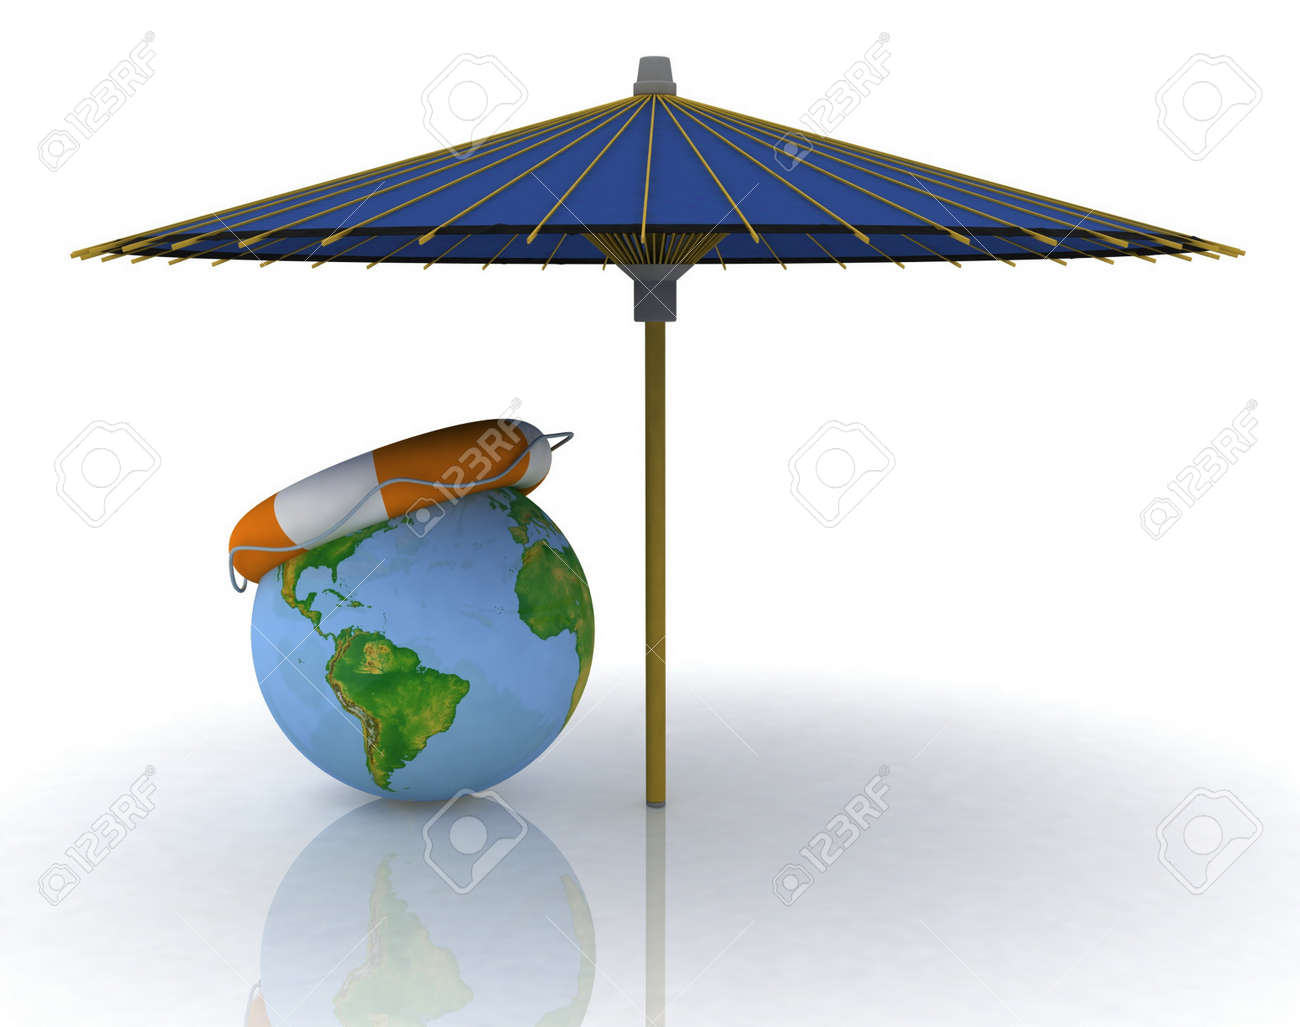 globe, umbrella and lifebuoy, conception of rest on the resorts of the world Stock Photo - 11985349